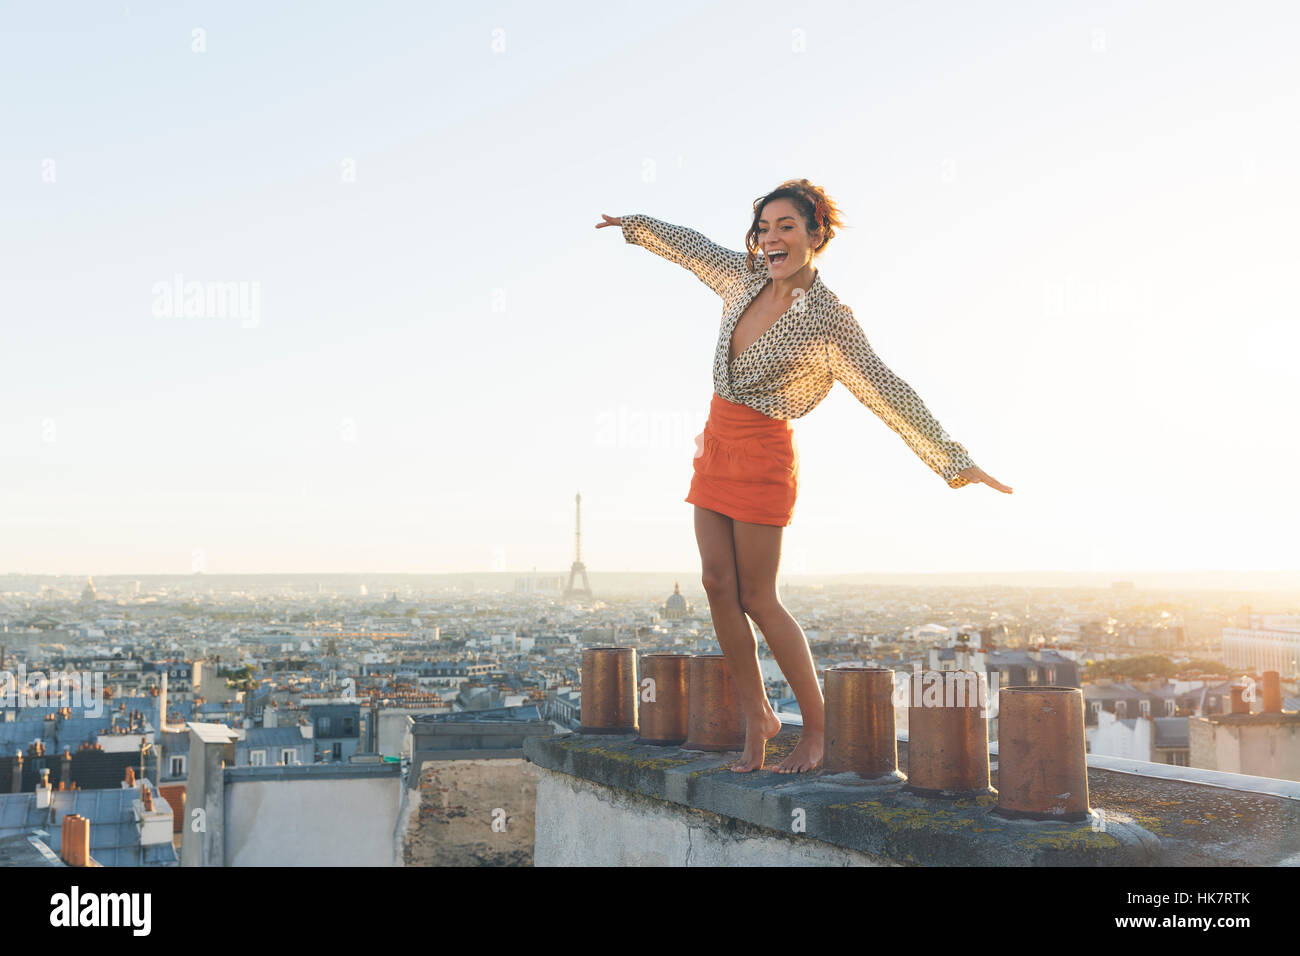 Paris, Happy woman enjoying view on the roofs of Paris - Stock Image